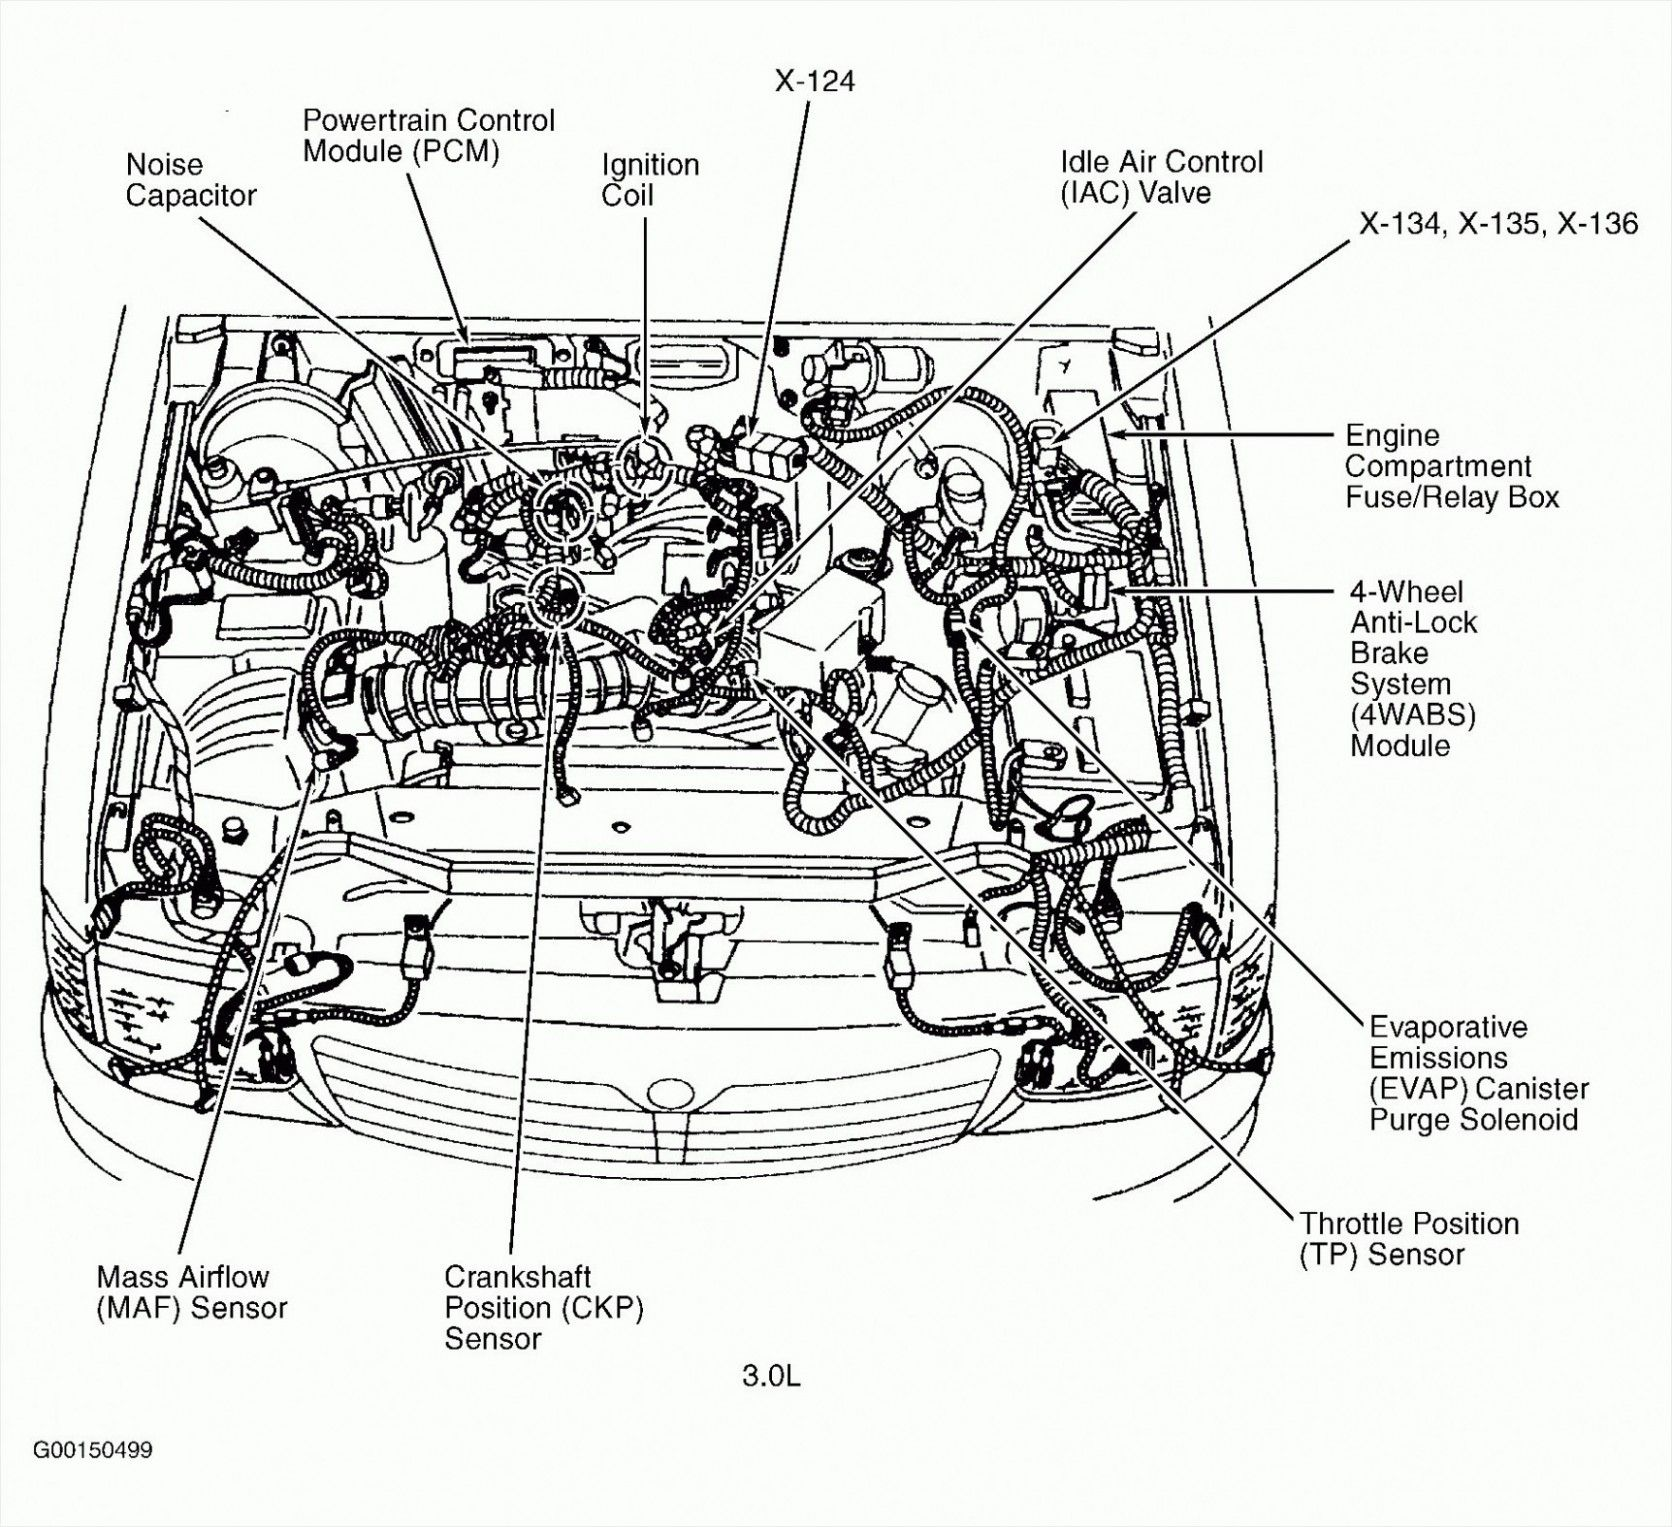 Opel Engine Schematic | Printable Worksheets and Activities for Teachers,  Parents, Tutors and Homeschool Familiesindymoves.org